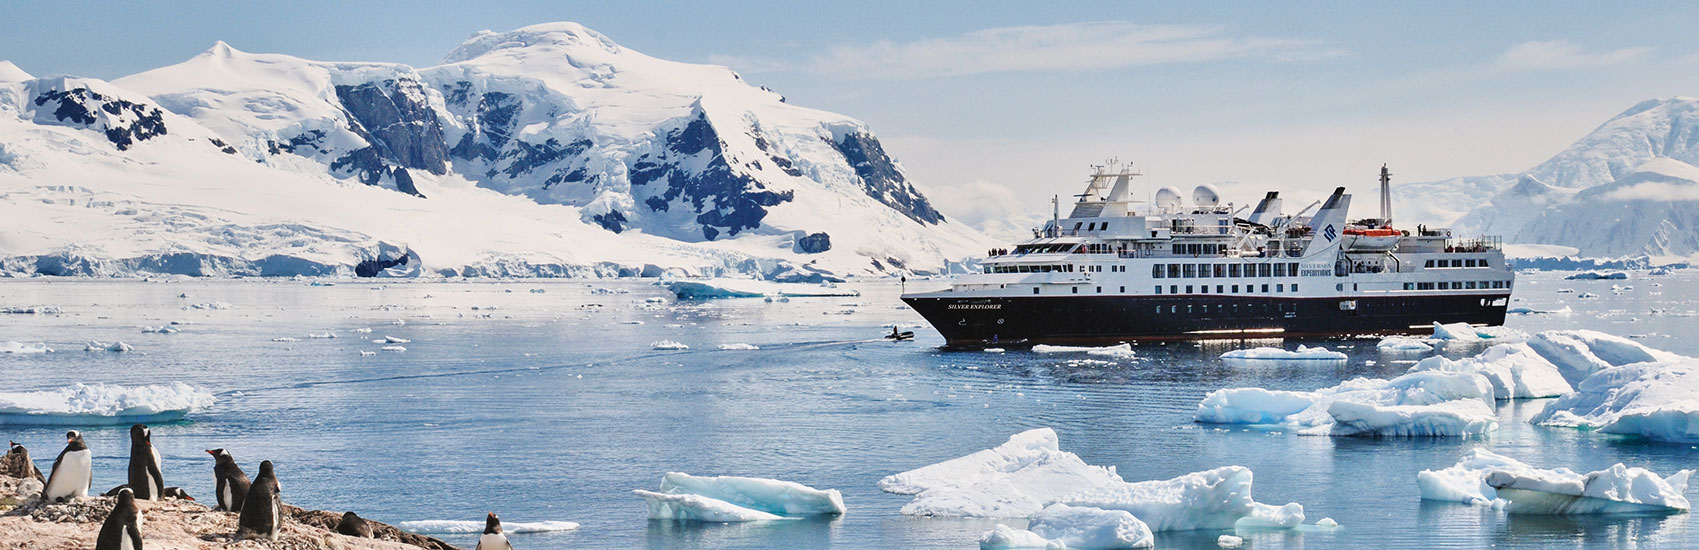 All-Inclusive Antarctica Experience with Silversea Cruises